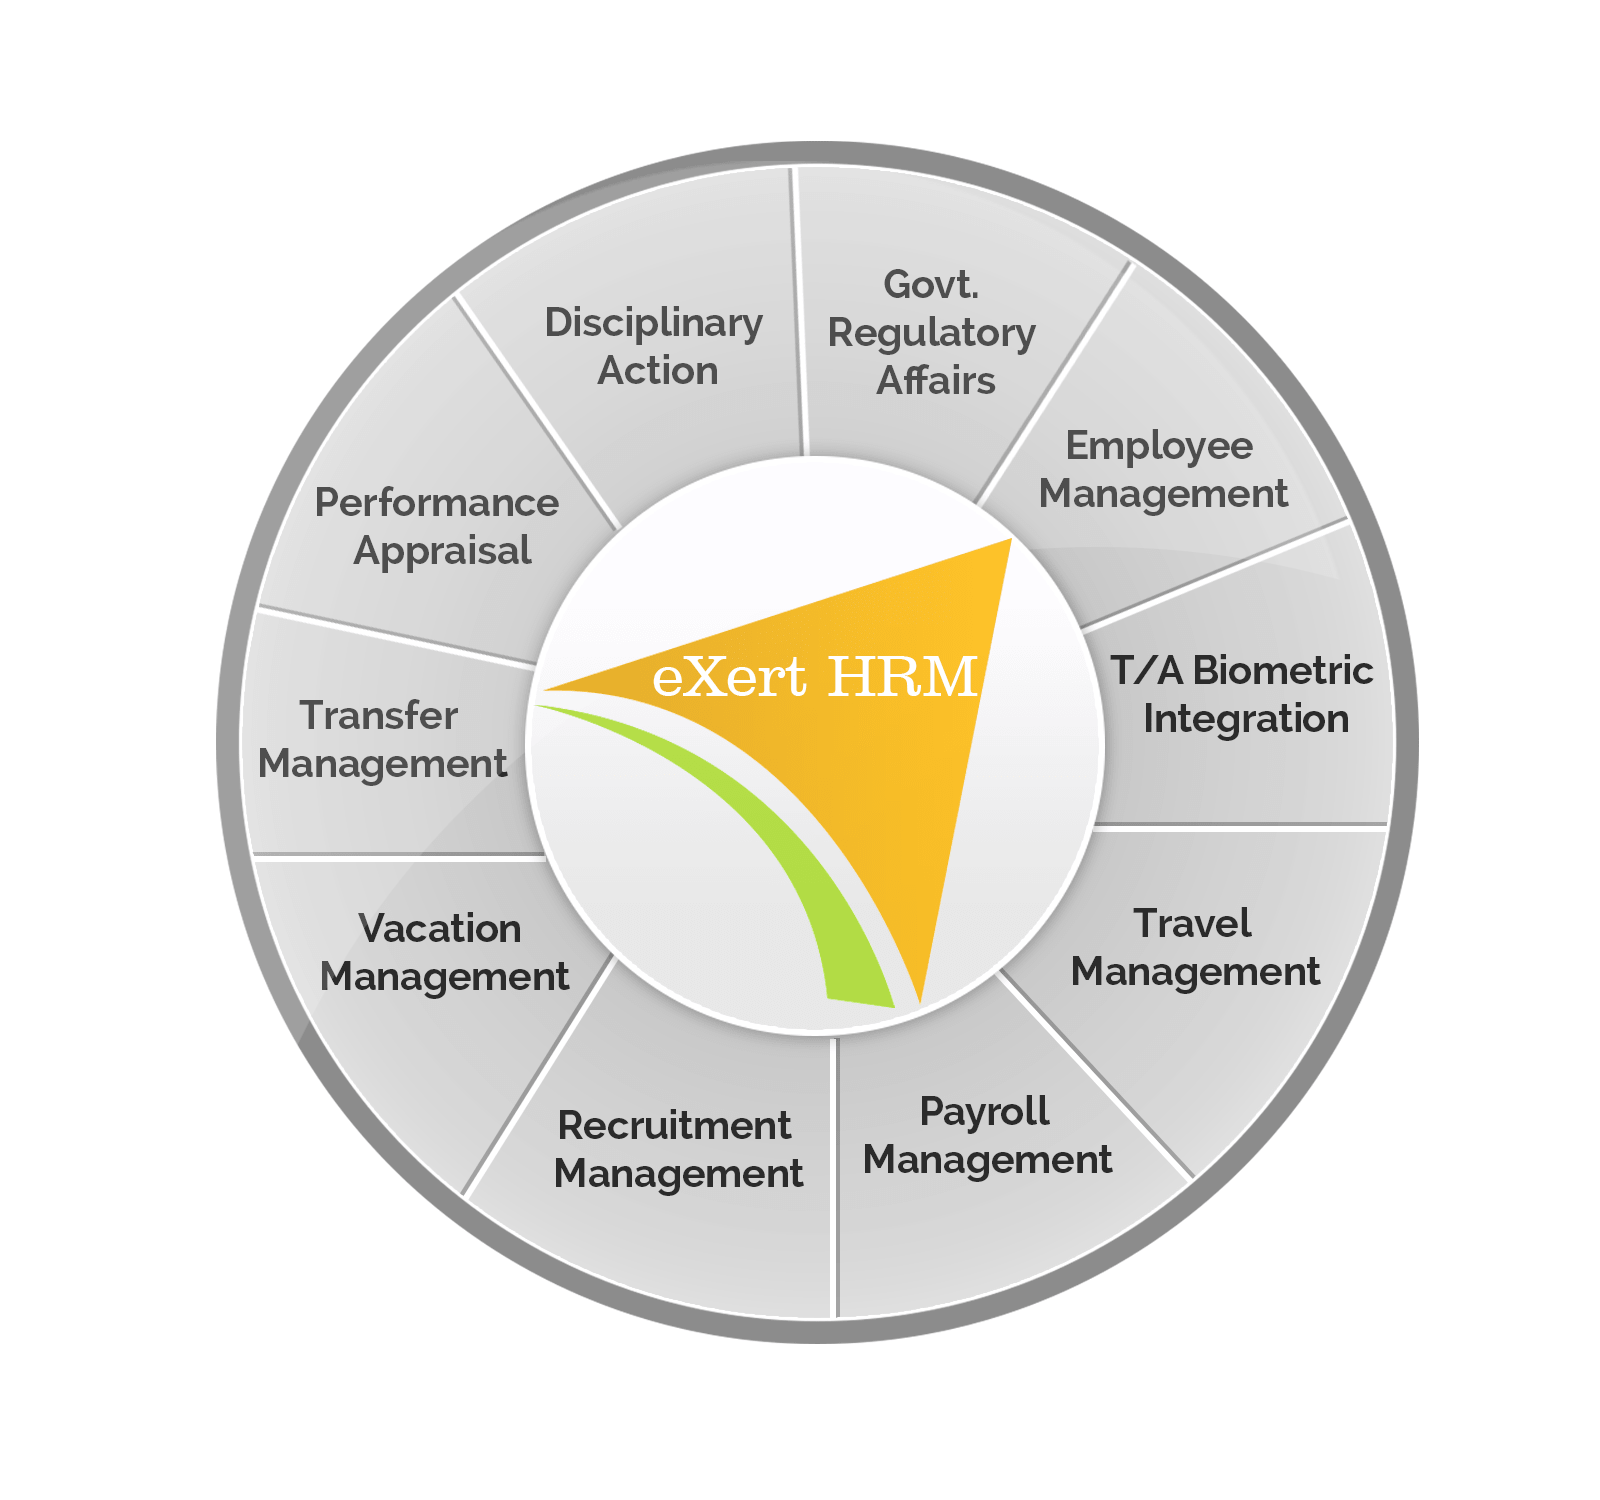 stages through which human resource management Methods and techniques specific to human resource management  research have been going through  and the main stages of the human resource management.